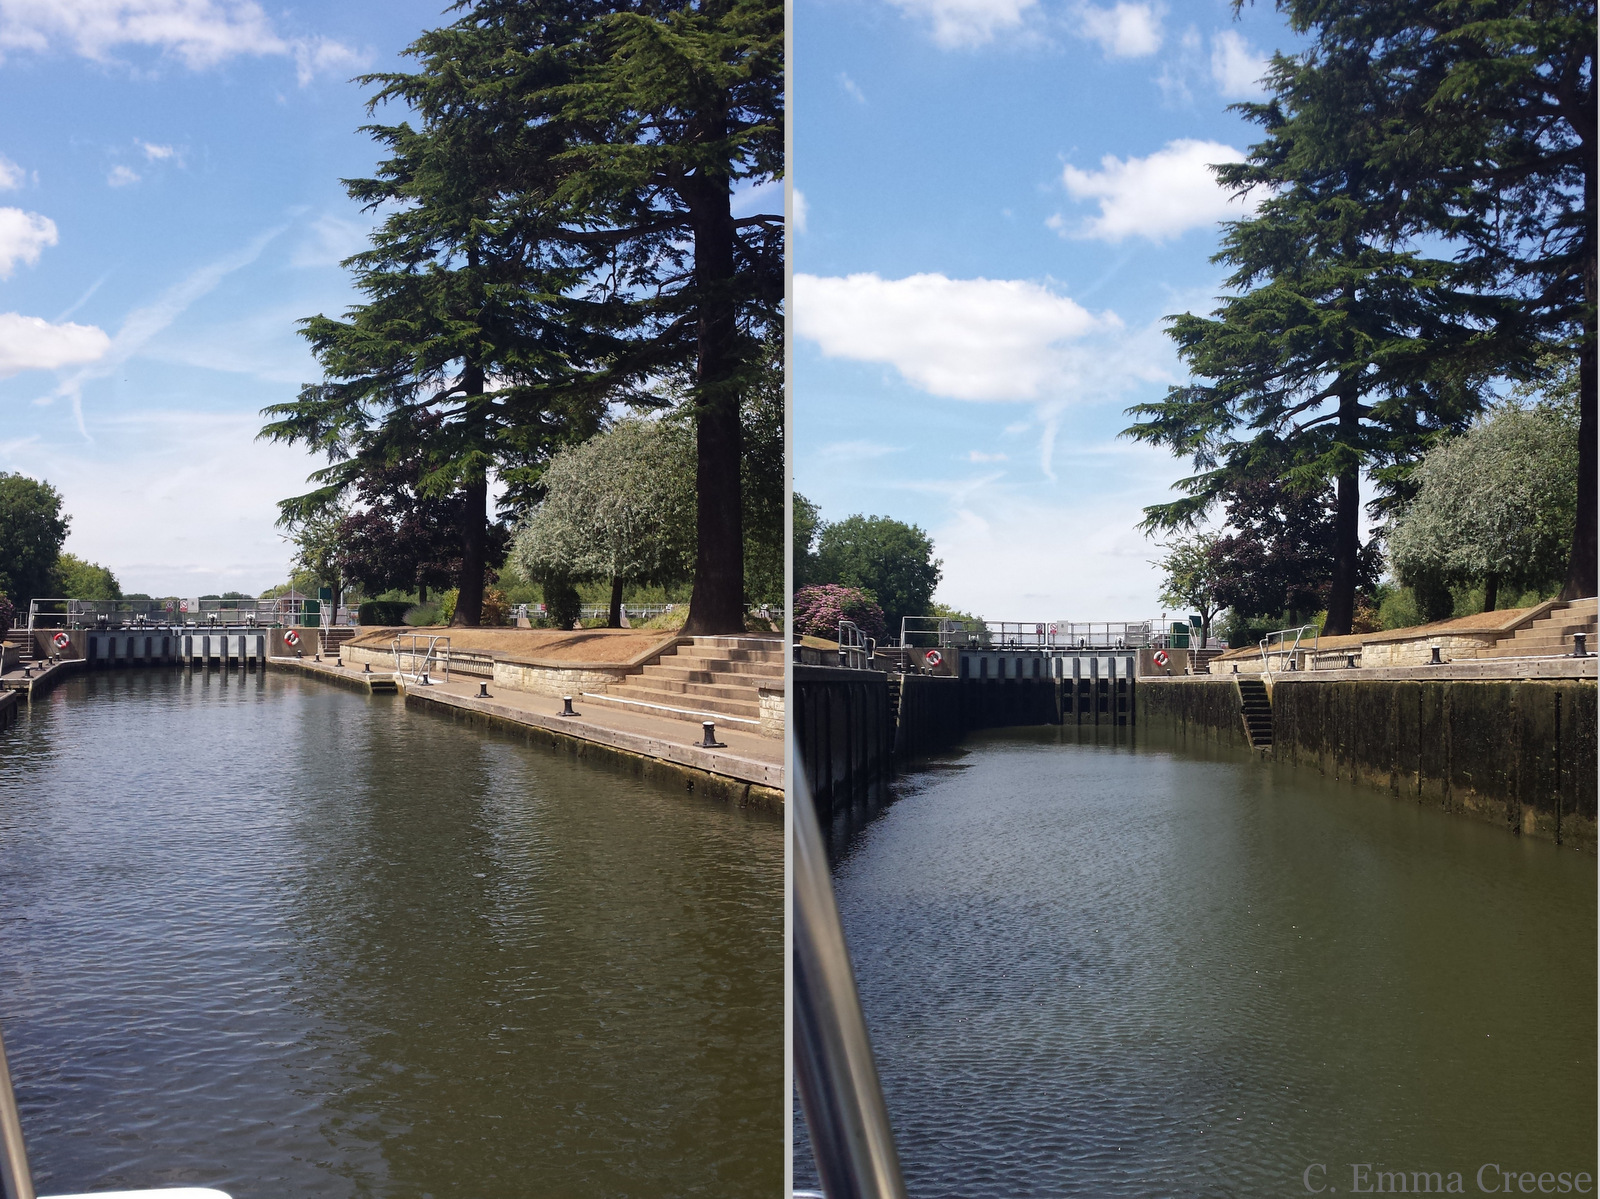 Canal boat Locks - Things to do in Runnymede: take a boat ride along the Thames River